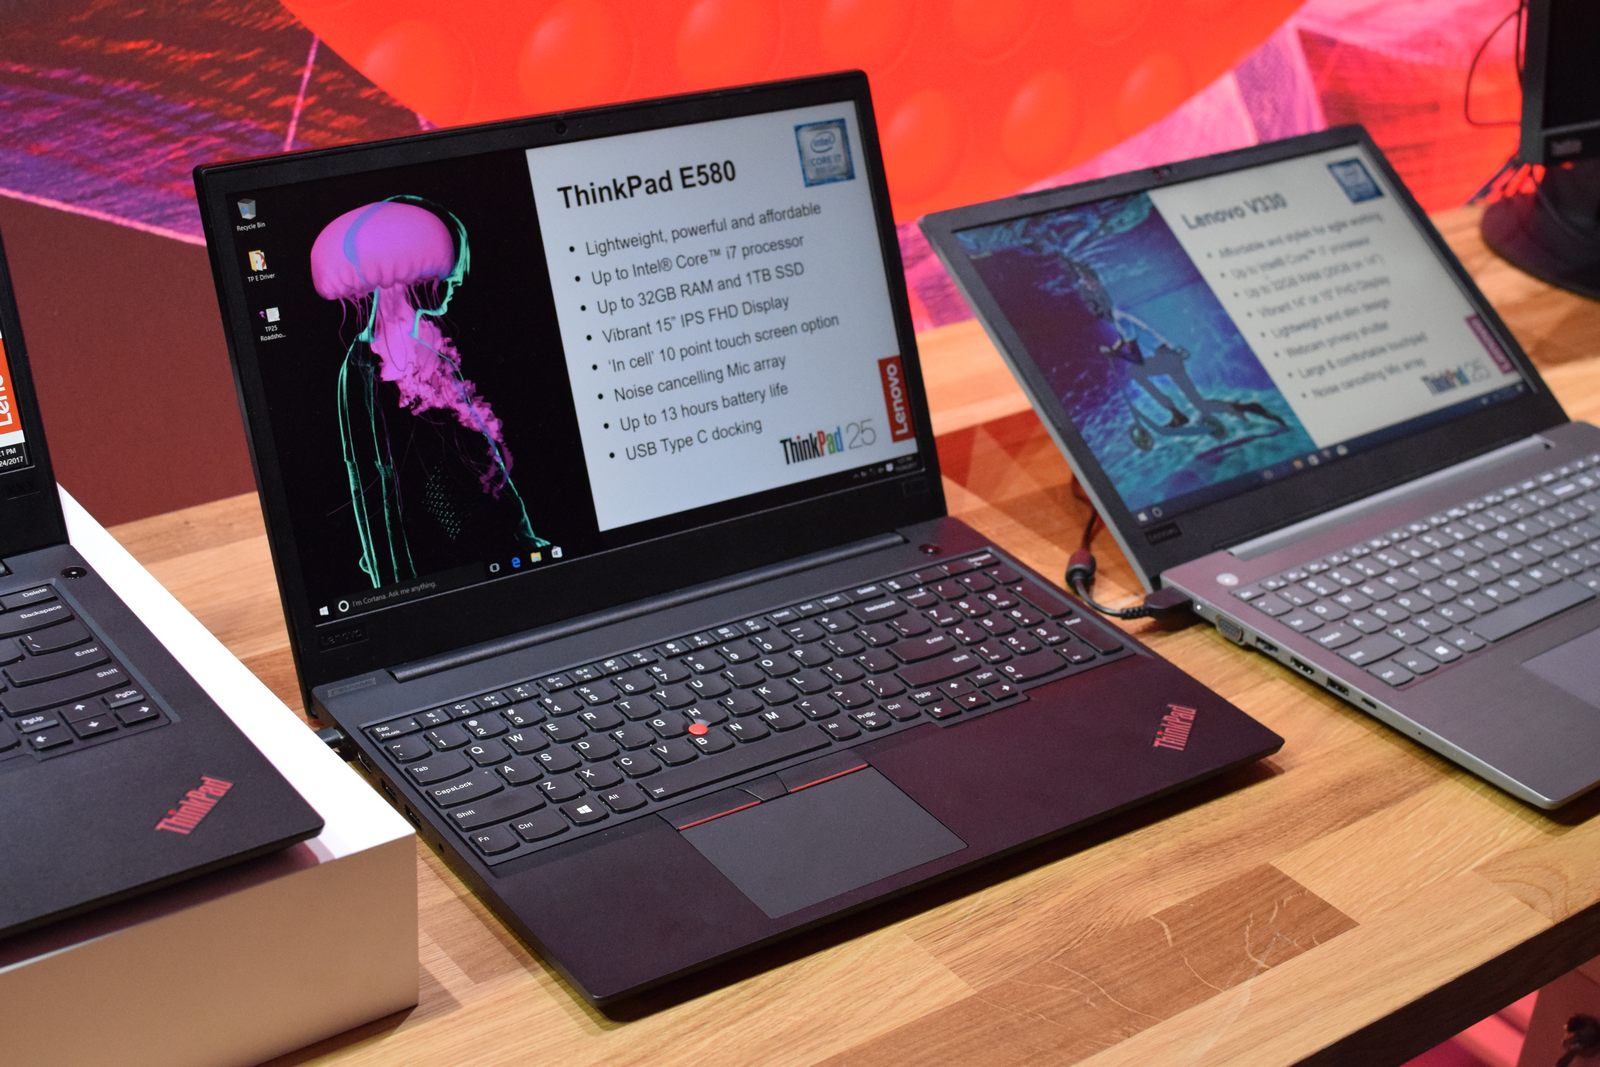 Lenovo: First pictures of the new affordable ThinkPads E480